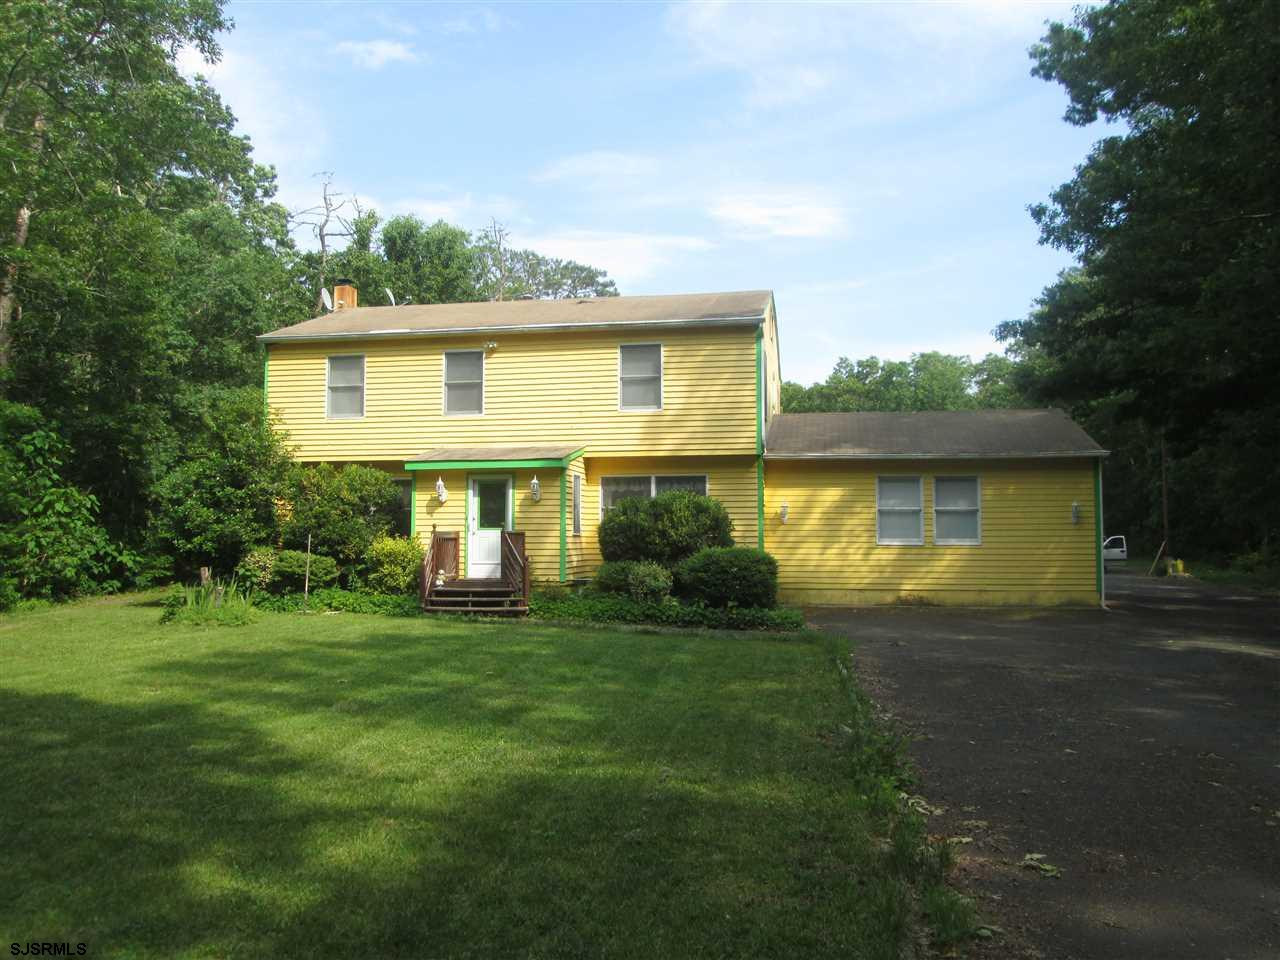 430 A S 2nd Ave, Galloway Township, NJ 08205